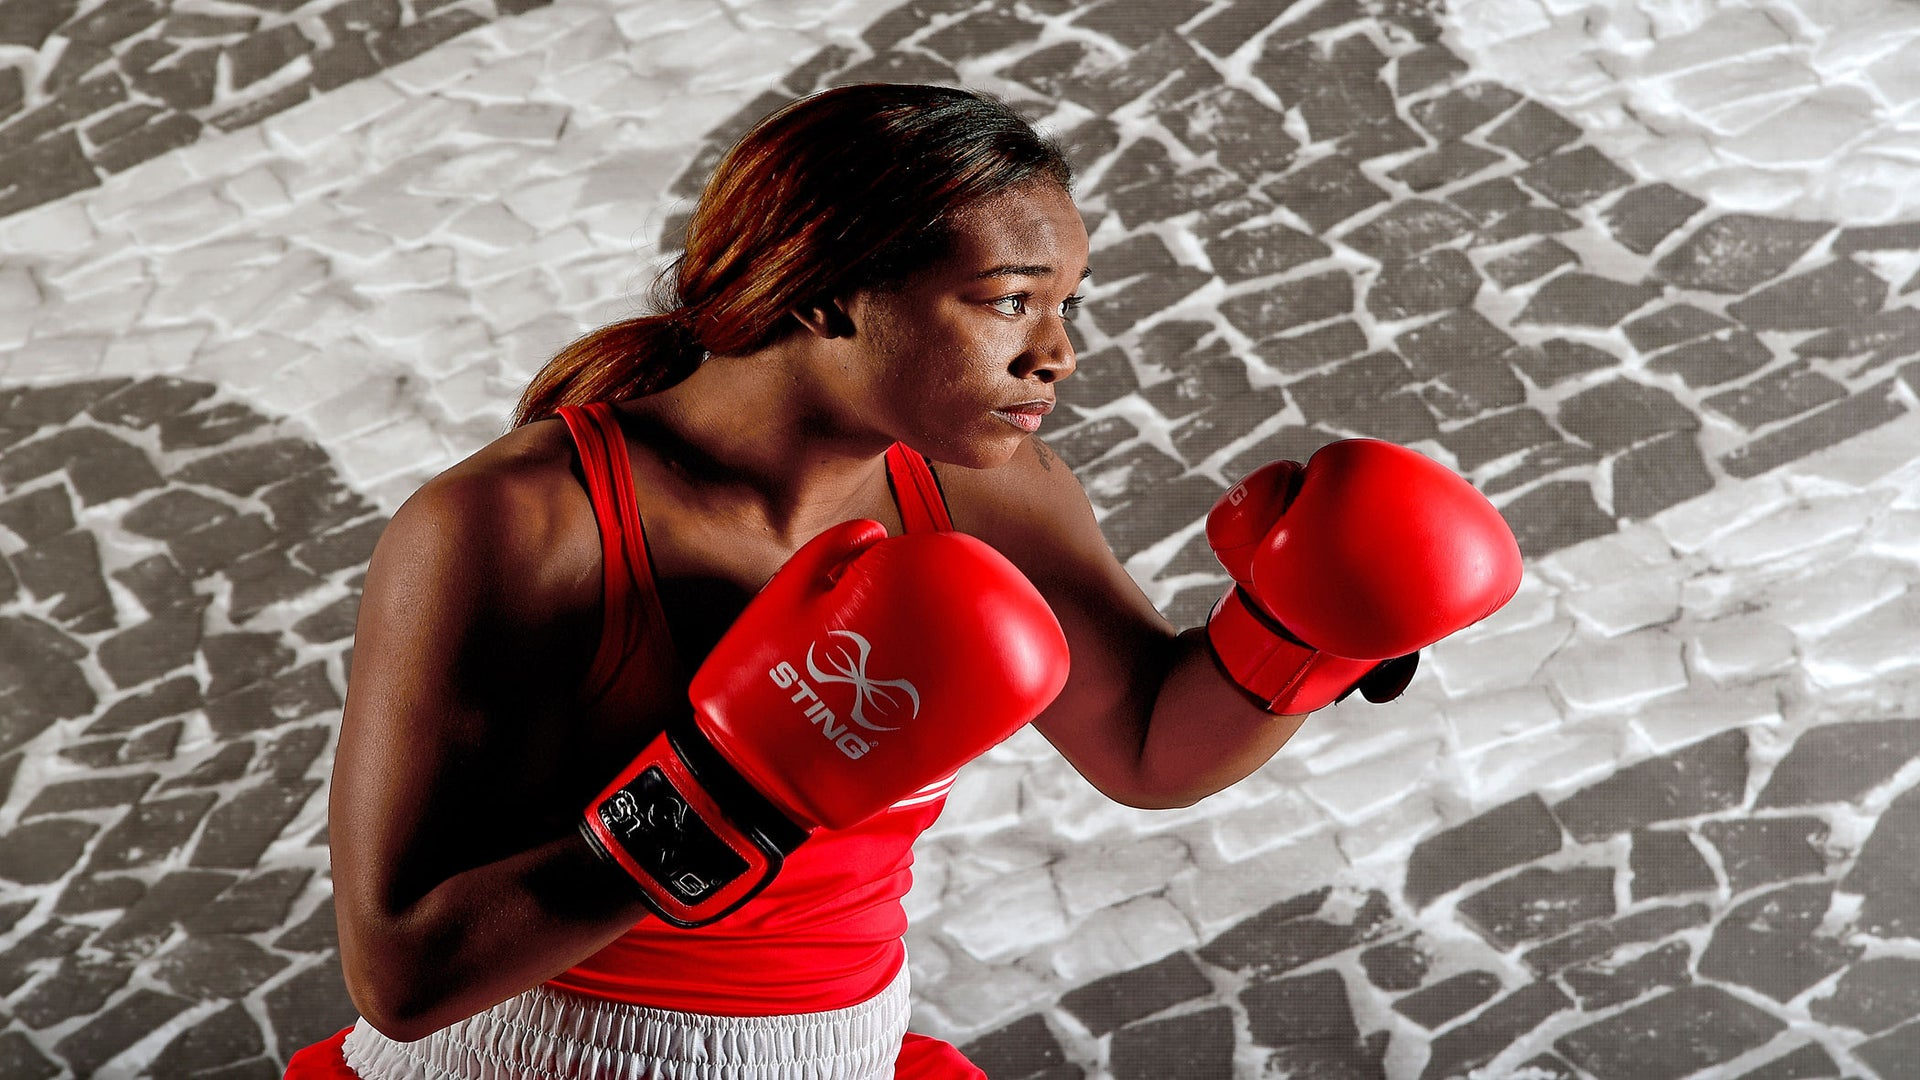 I Plan On Boxing My Way To Health This Year And You Should Too